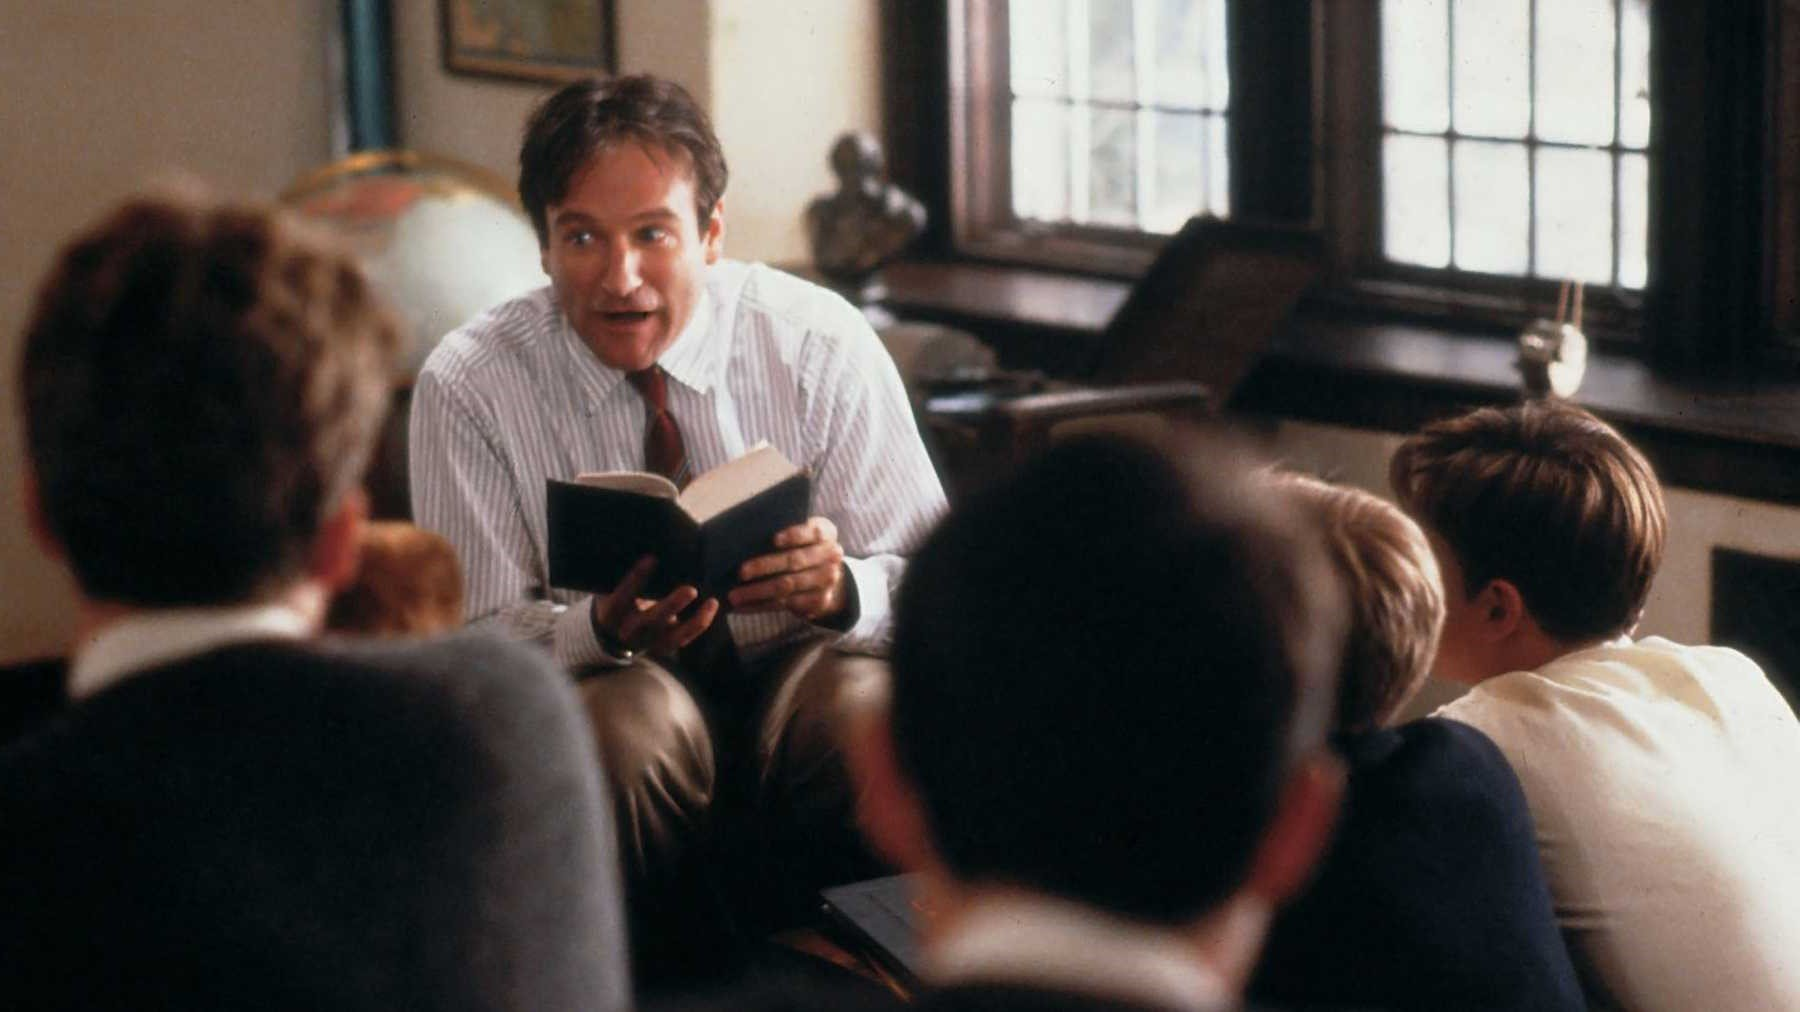 Dead Poet's Society (1990) | 10 Movies That Will Inspire You | Brain Berries